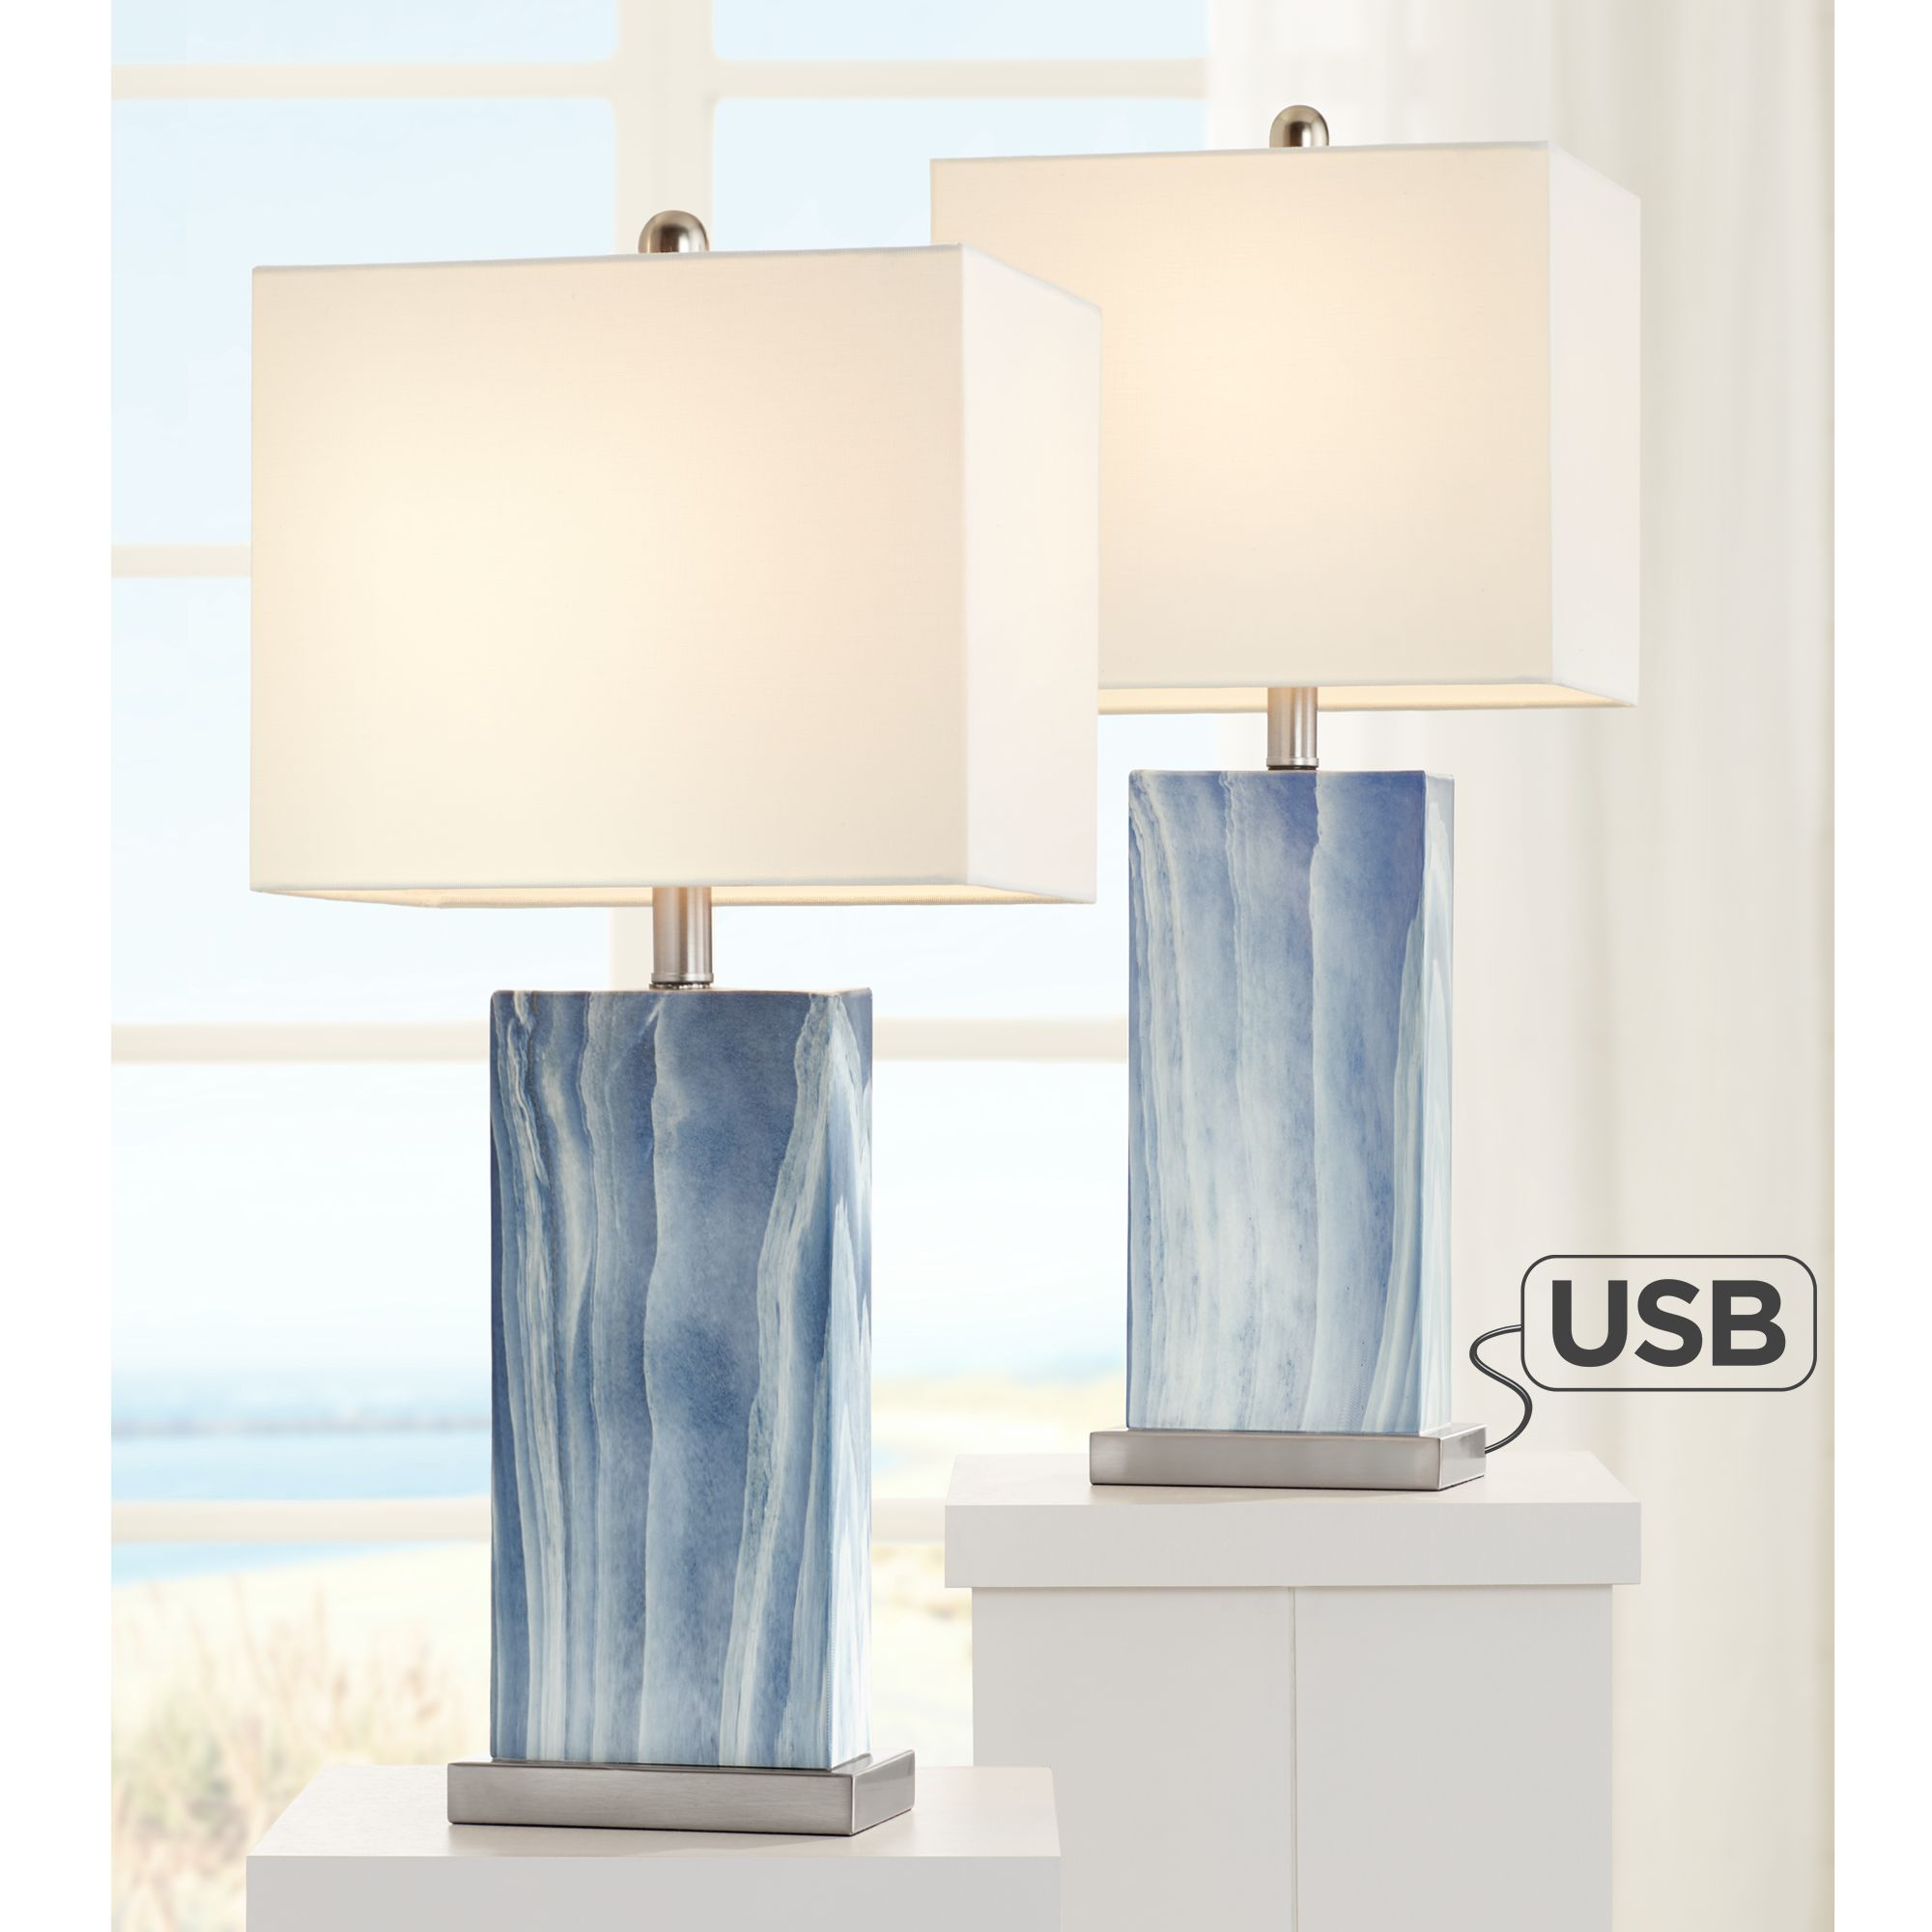 Picture of: 360 Lighting Modern Table Lamps Set Of 2 With Usb Charging Port Rectangular Blue White Fabric Shade Living Room Bedroom Bedside Walmart Com Walmart Com